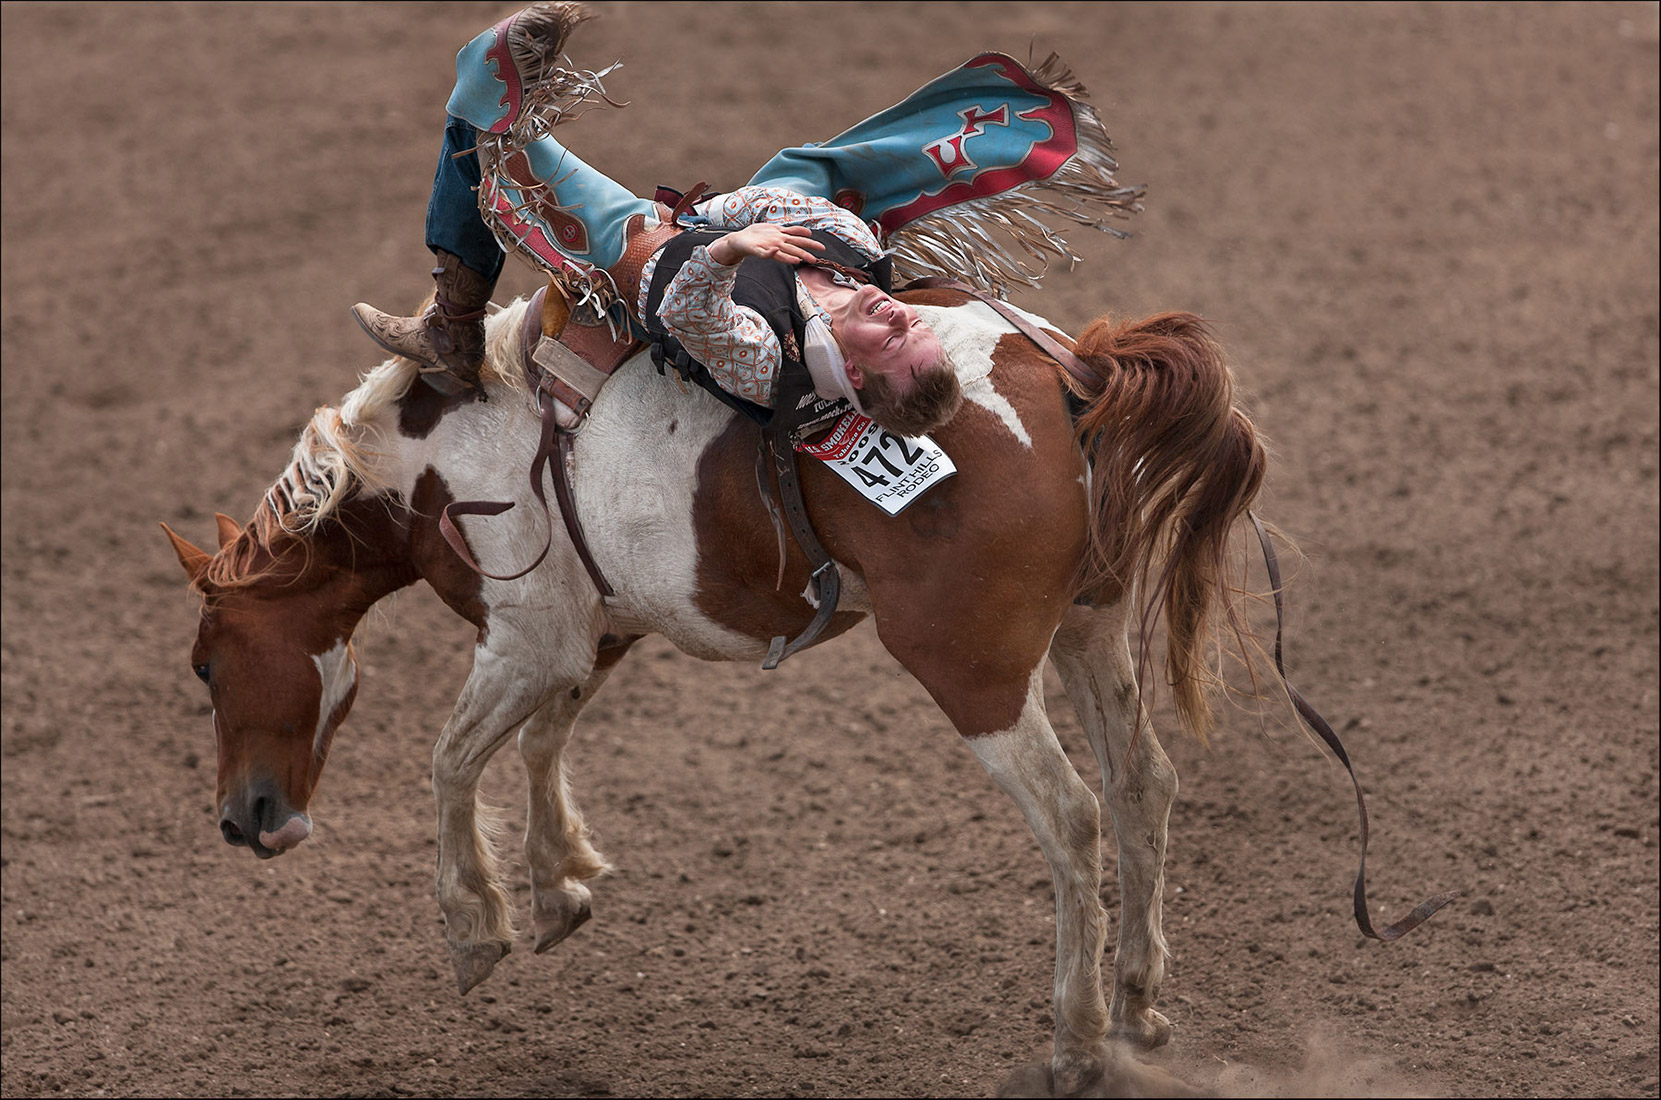 090607_rodeo_282